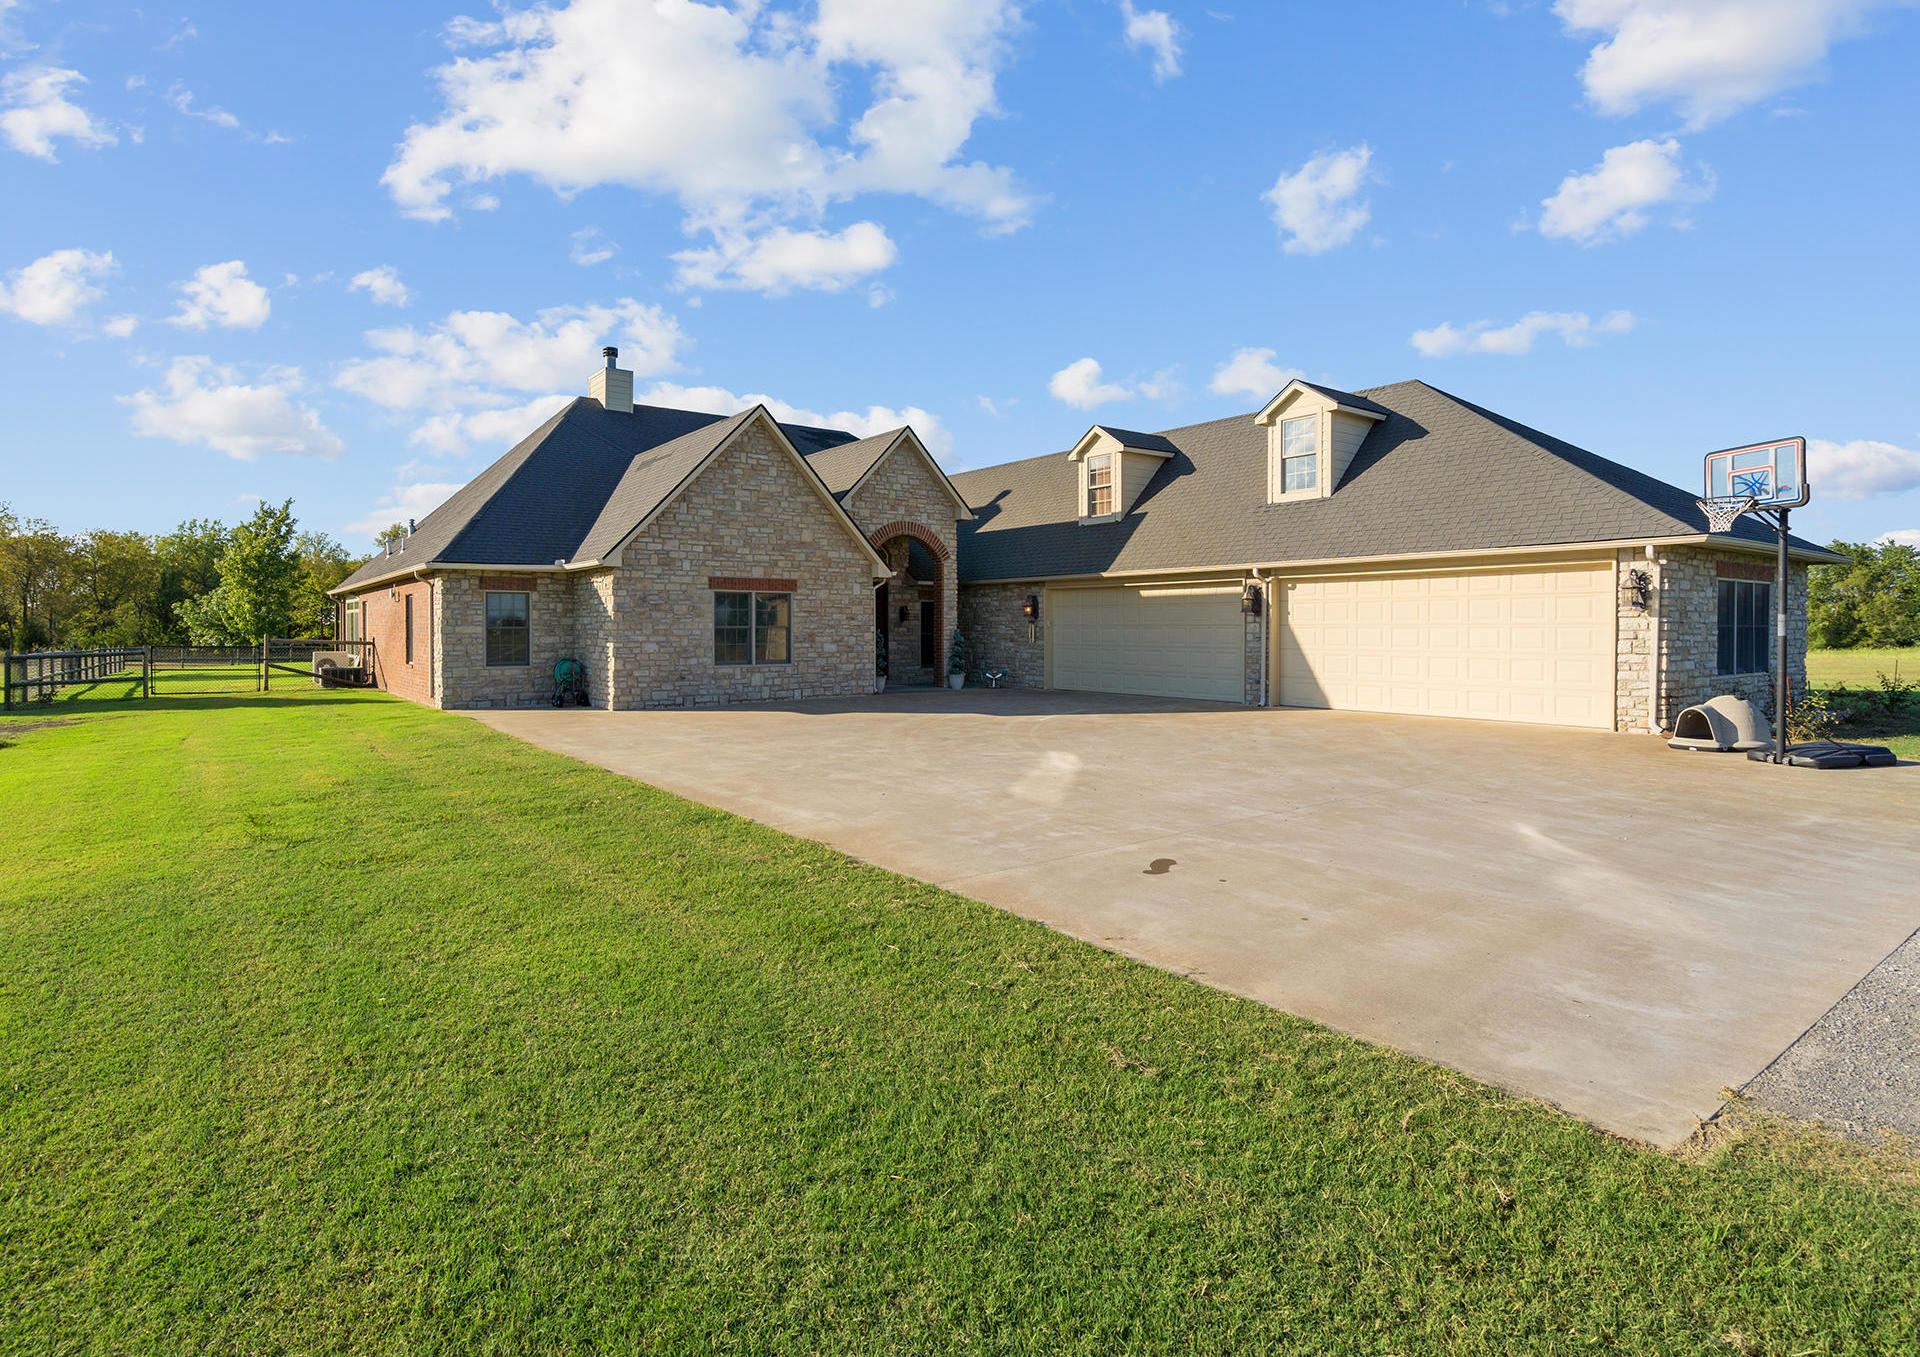 Off Market | 1529 Clayton Road Pryor, OK 74361 0